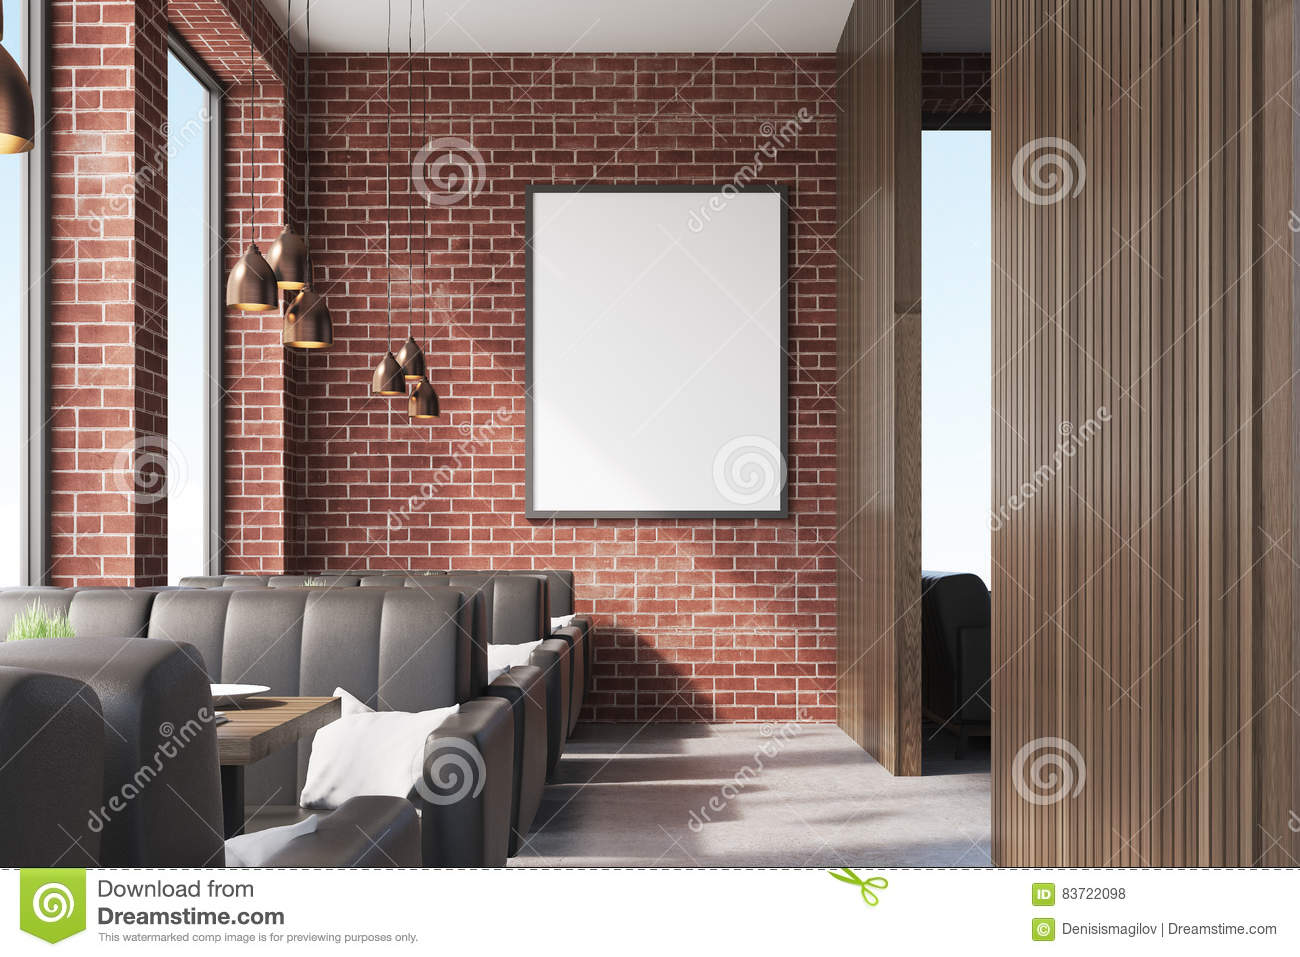 front view of cafe interior with sofas stock illustration - image